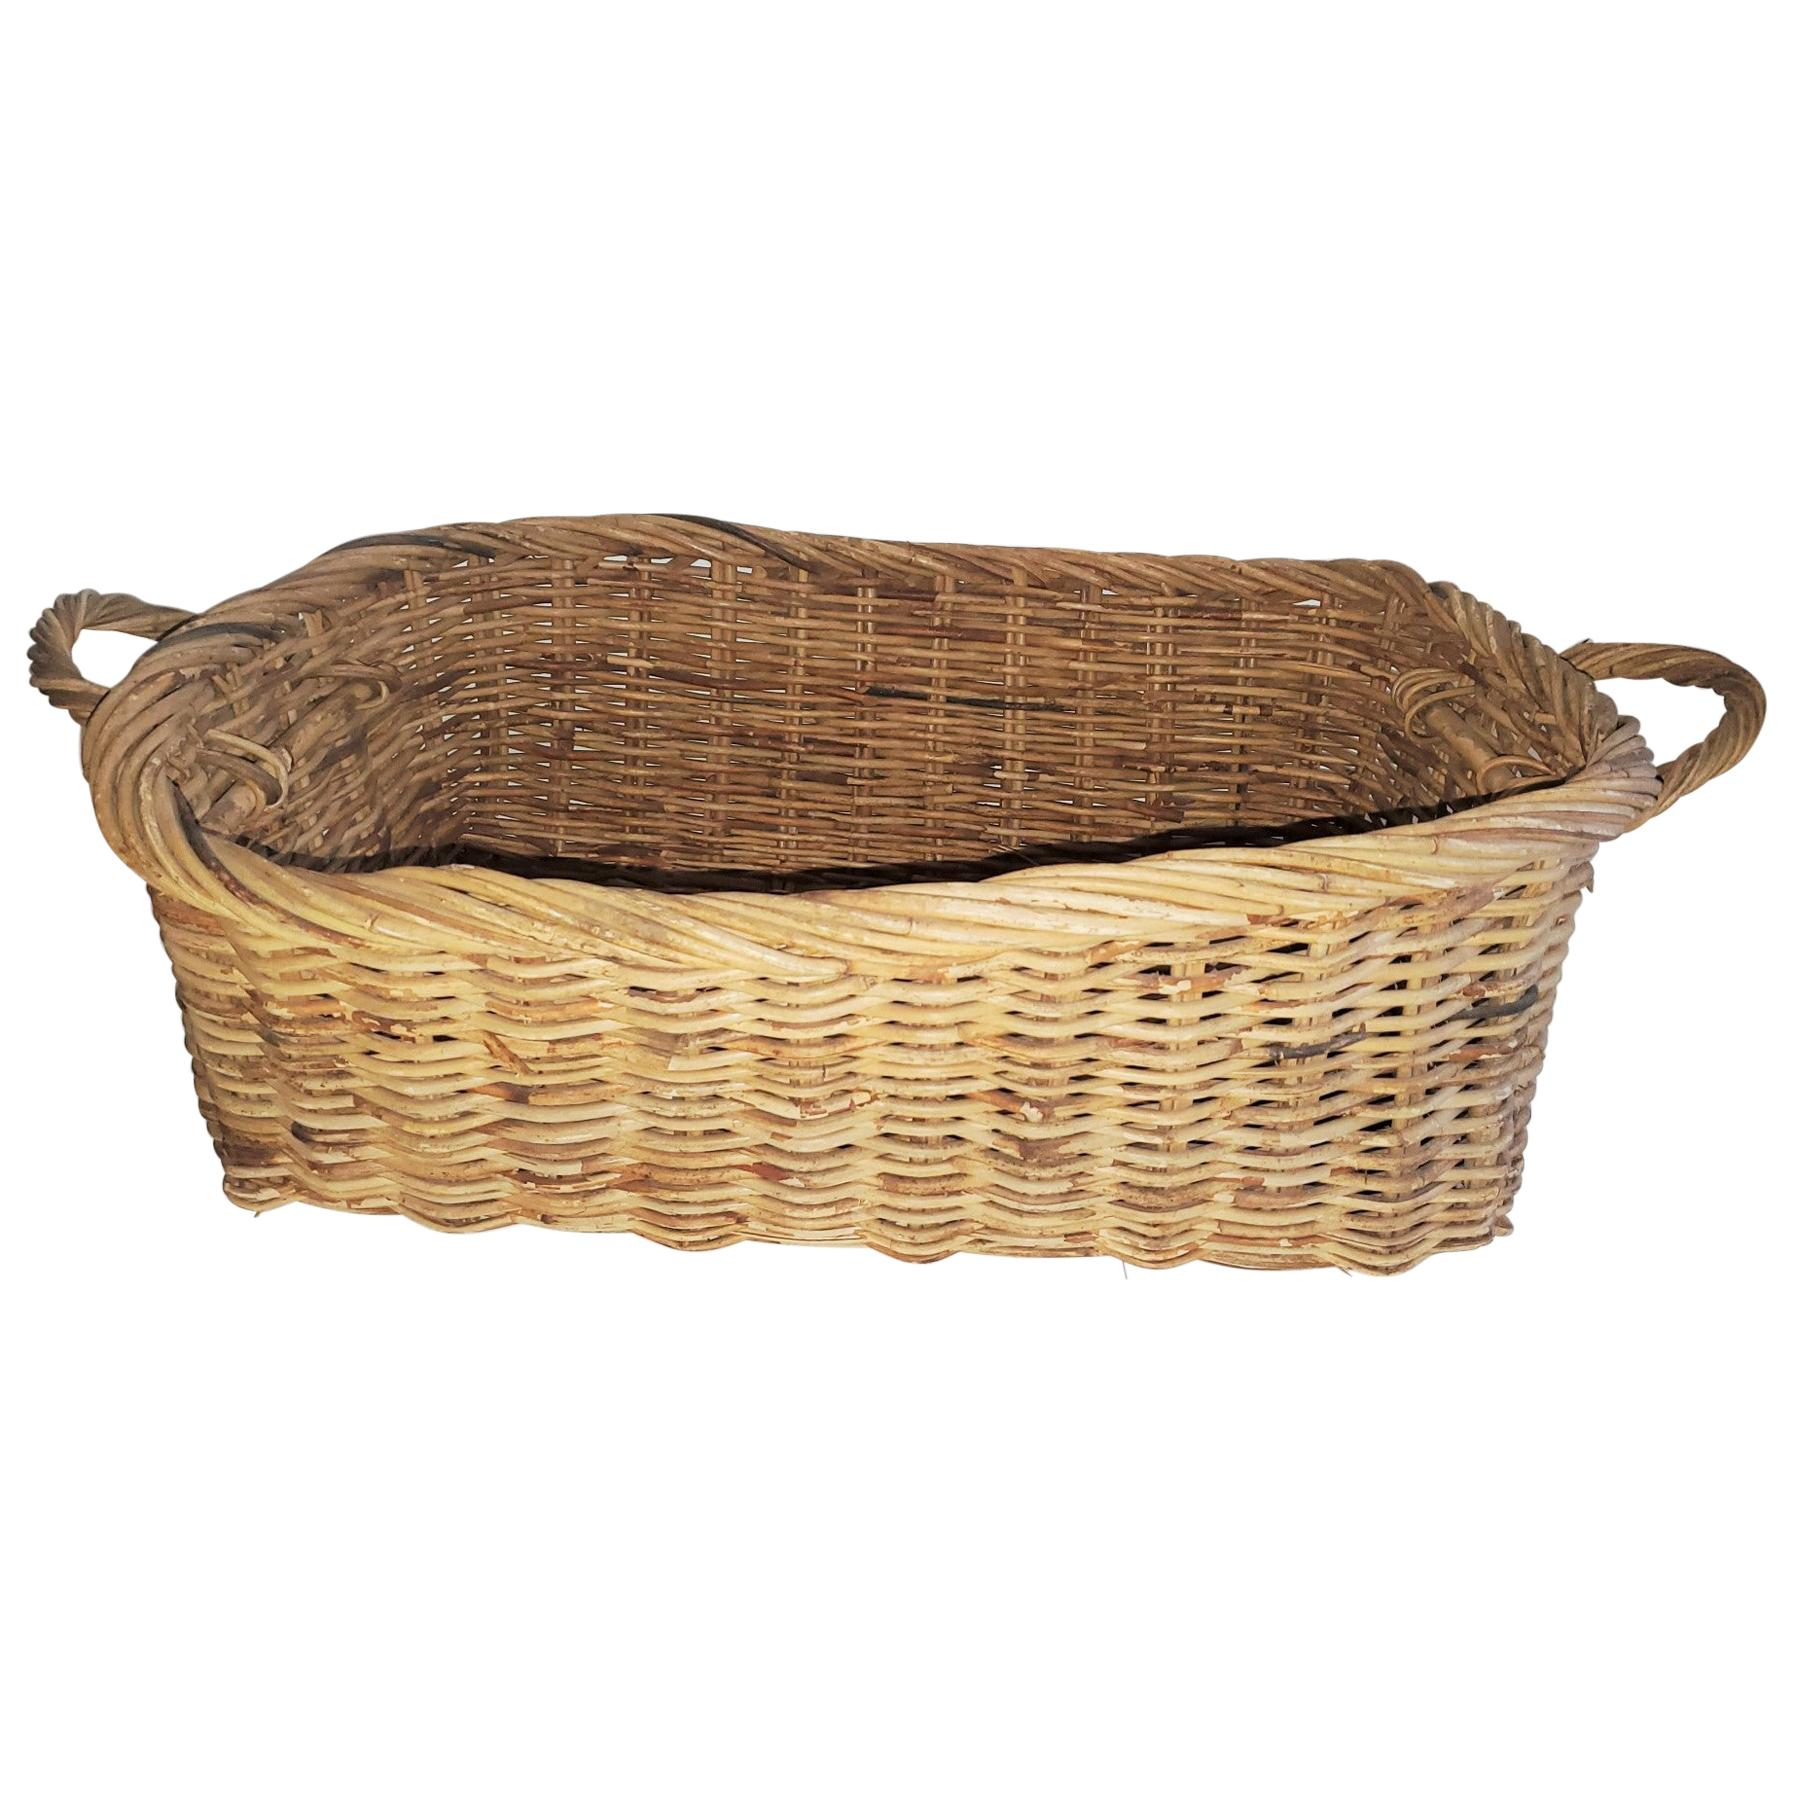 19th Century Large French Bread Basket from a Bakery